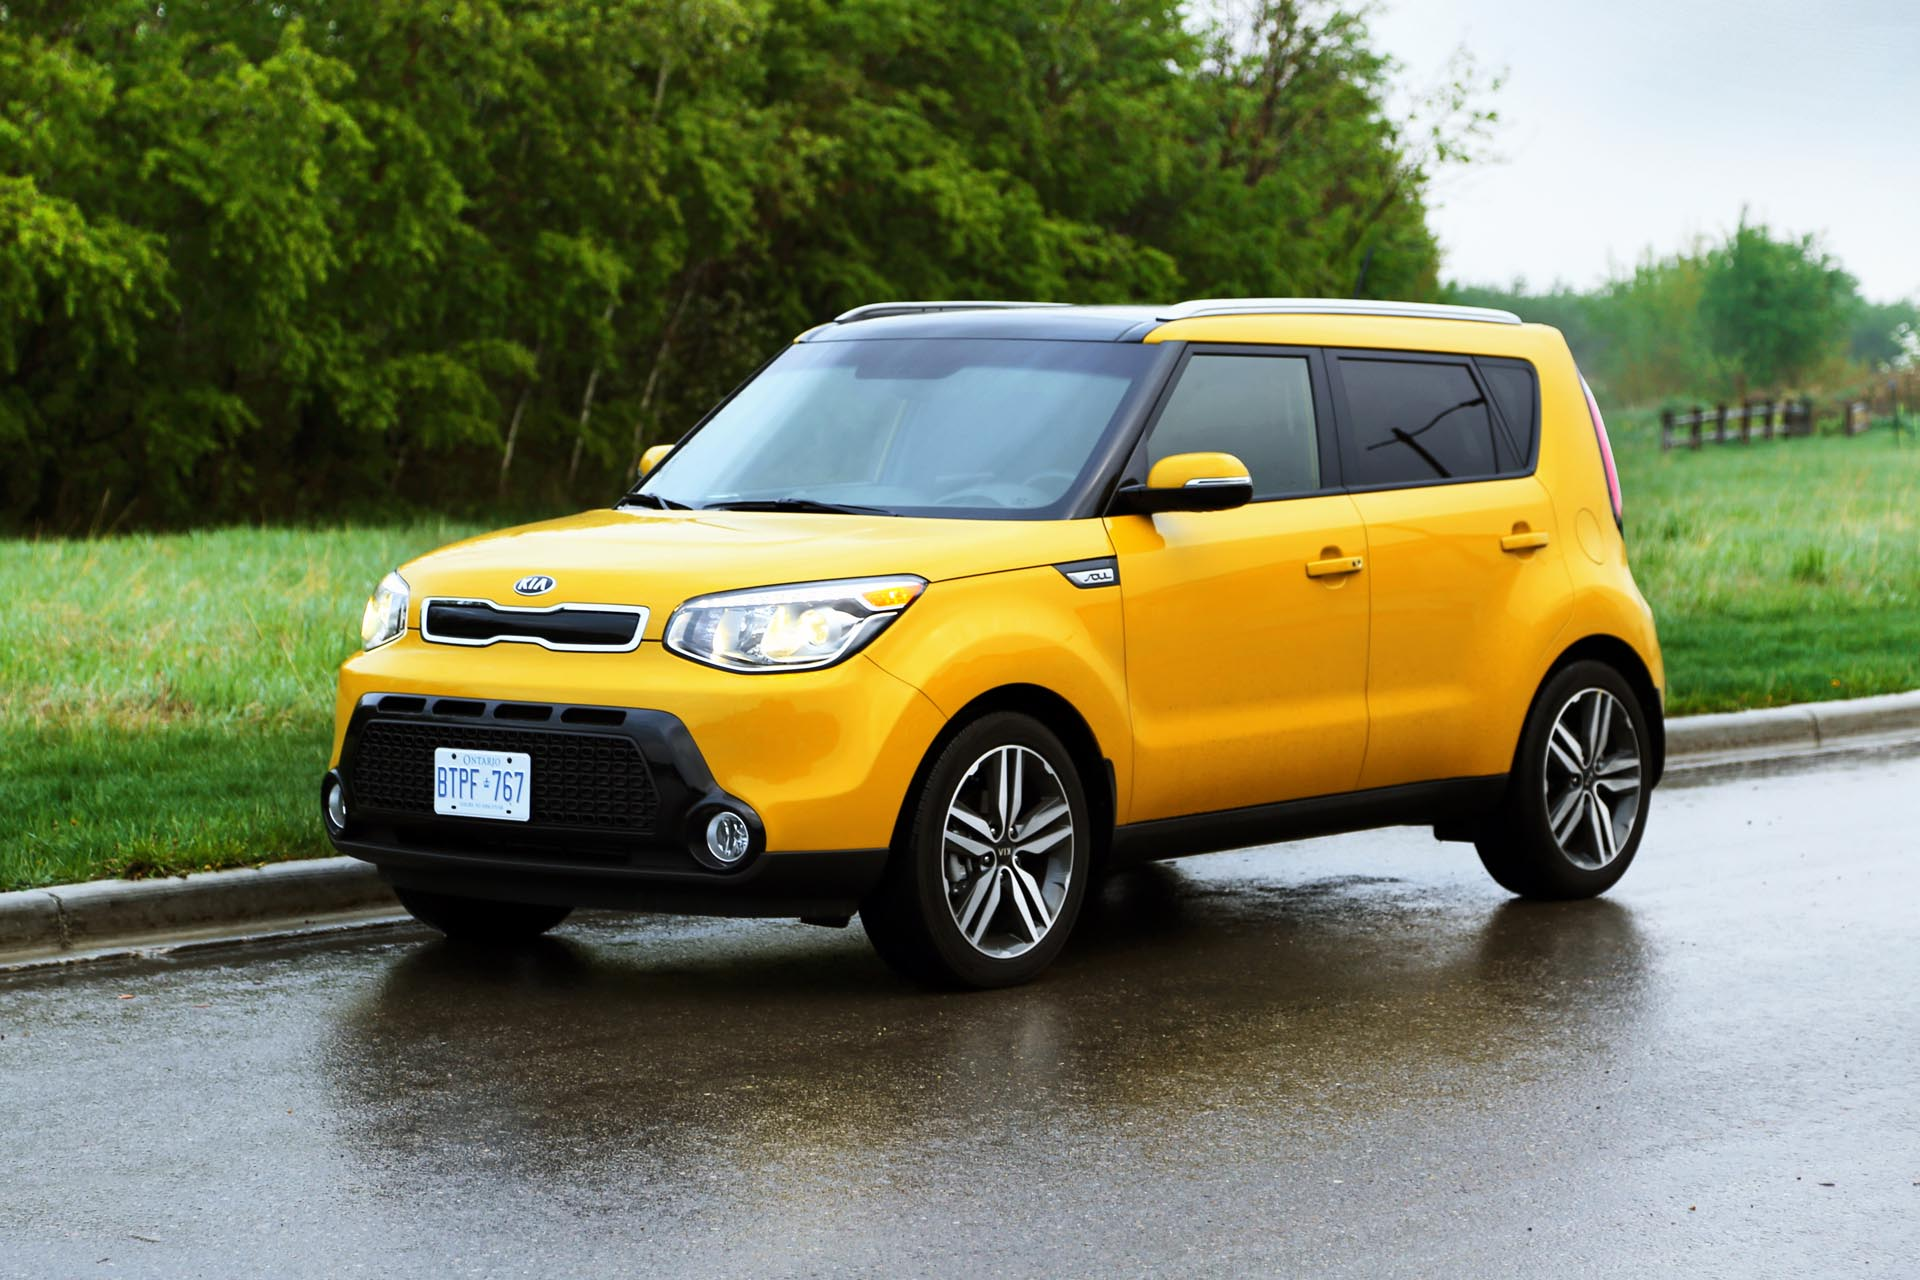 Yes, the Kia Soul is attention-grabbing and maybe you don't want people to watch as you take your fourth attempt to parallel park in that slightly-too-small spot right outside where you need to be. But think of it this way: there's no way drivers changing lanes will miss you in their mirrors or over their shoulders. The boxy design also means that you have an unobstructed view in all directions from the driver's seat, even with the chunky rear pillars. While you'd never call the driving experience